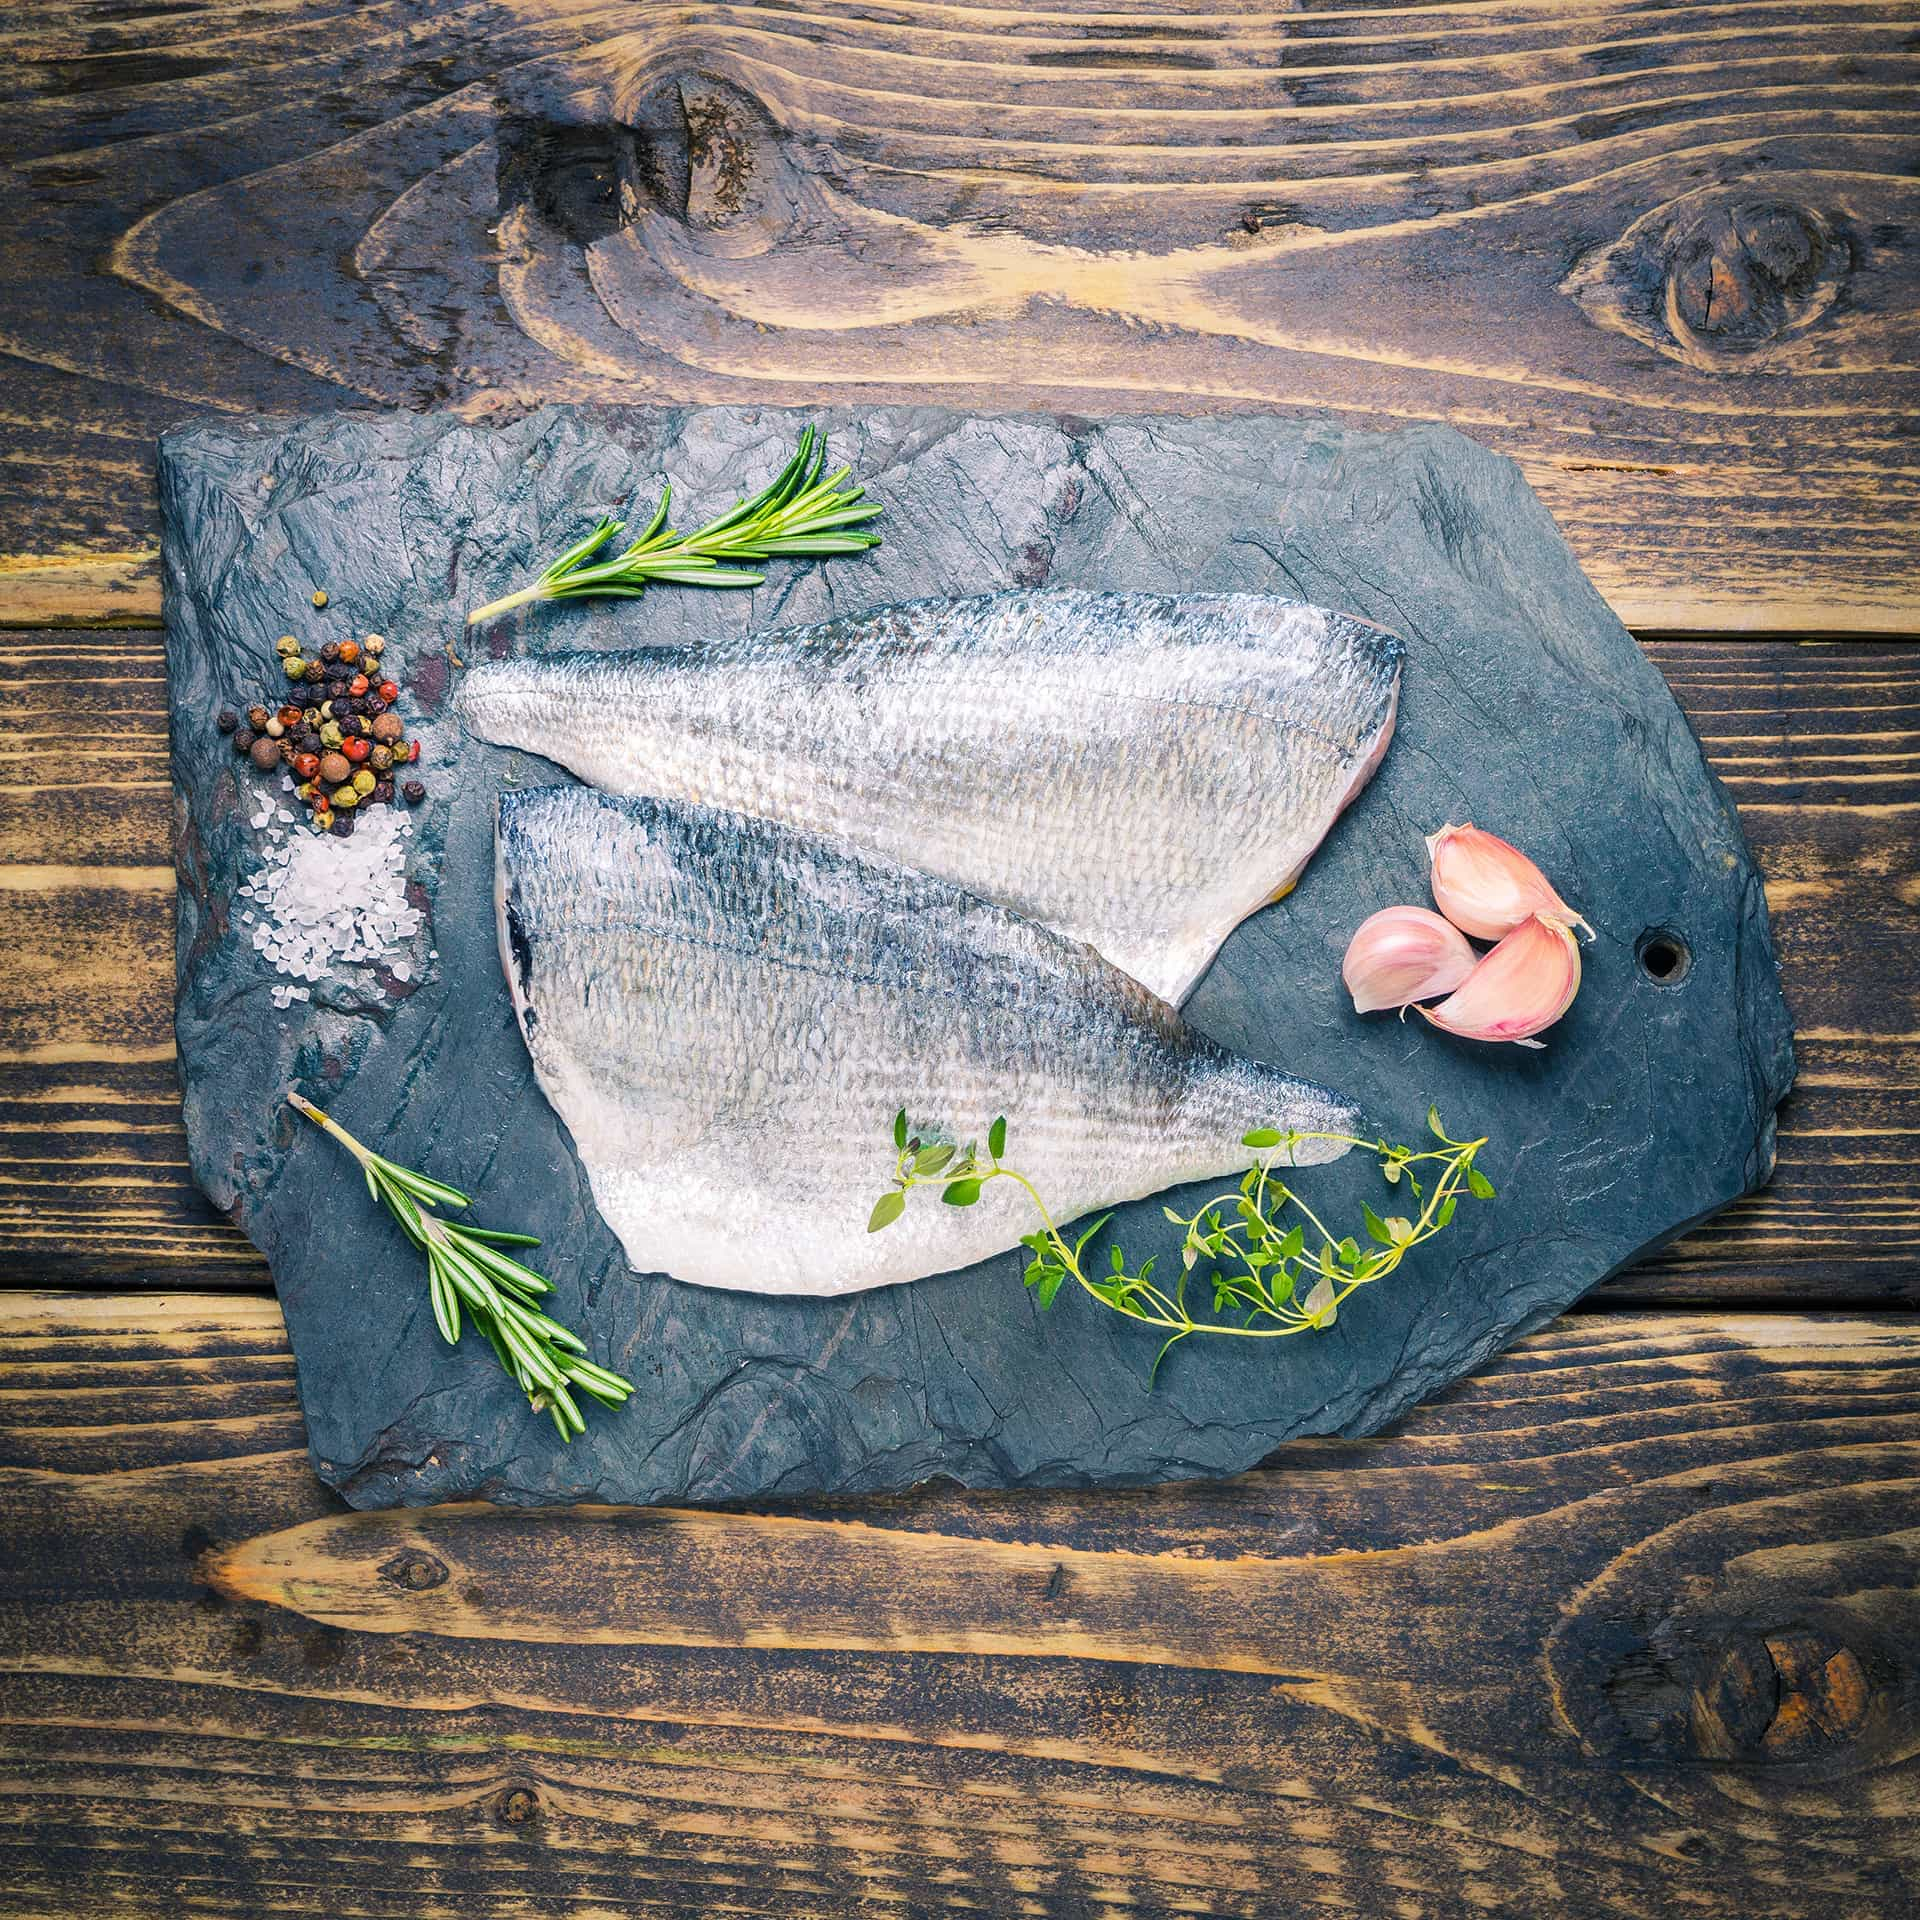 Sea bream fillets on a slate background